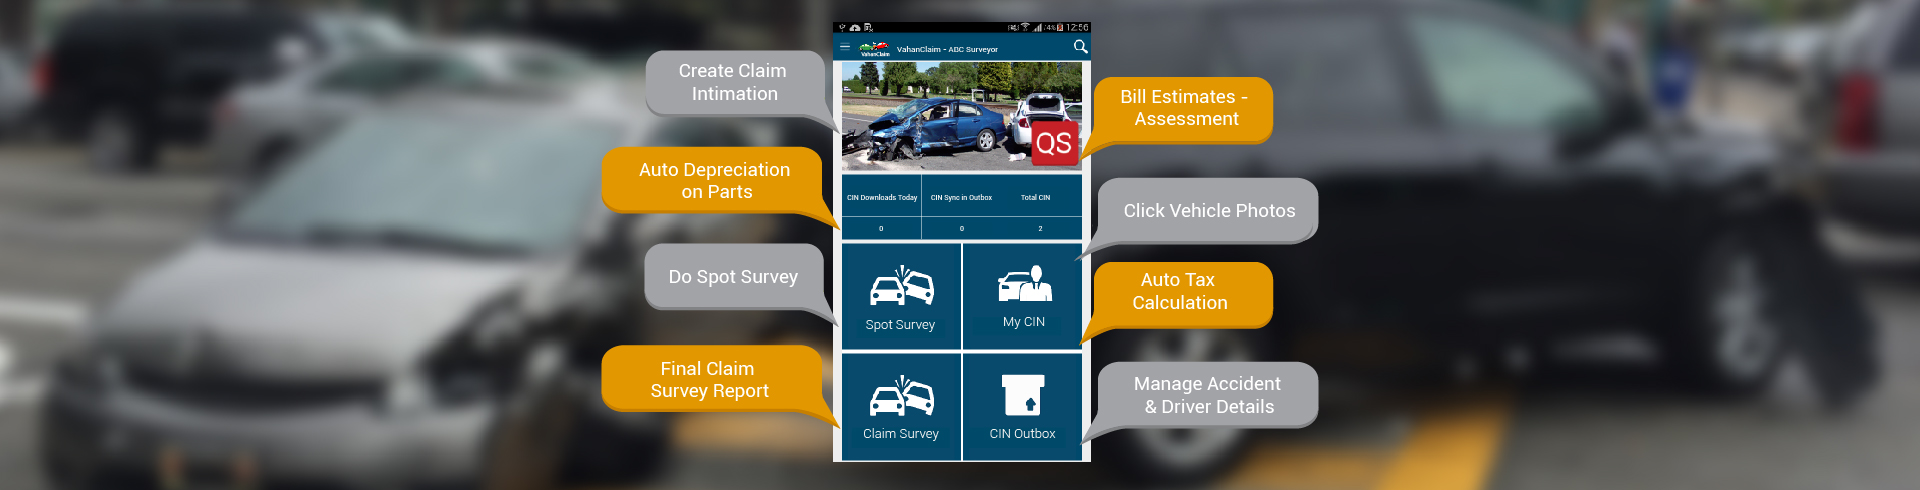 Surveyor Mobile App